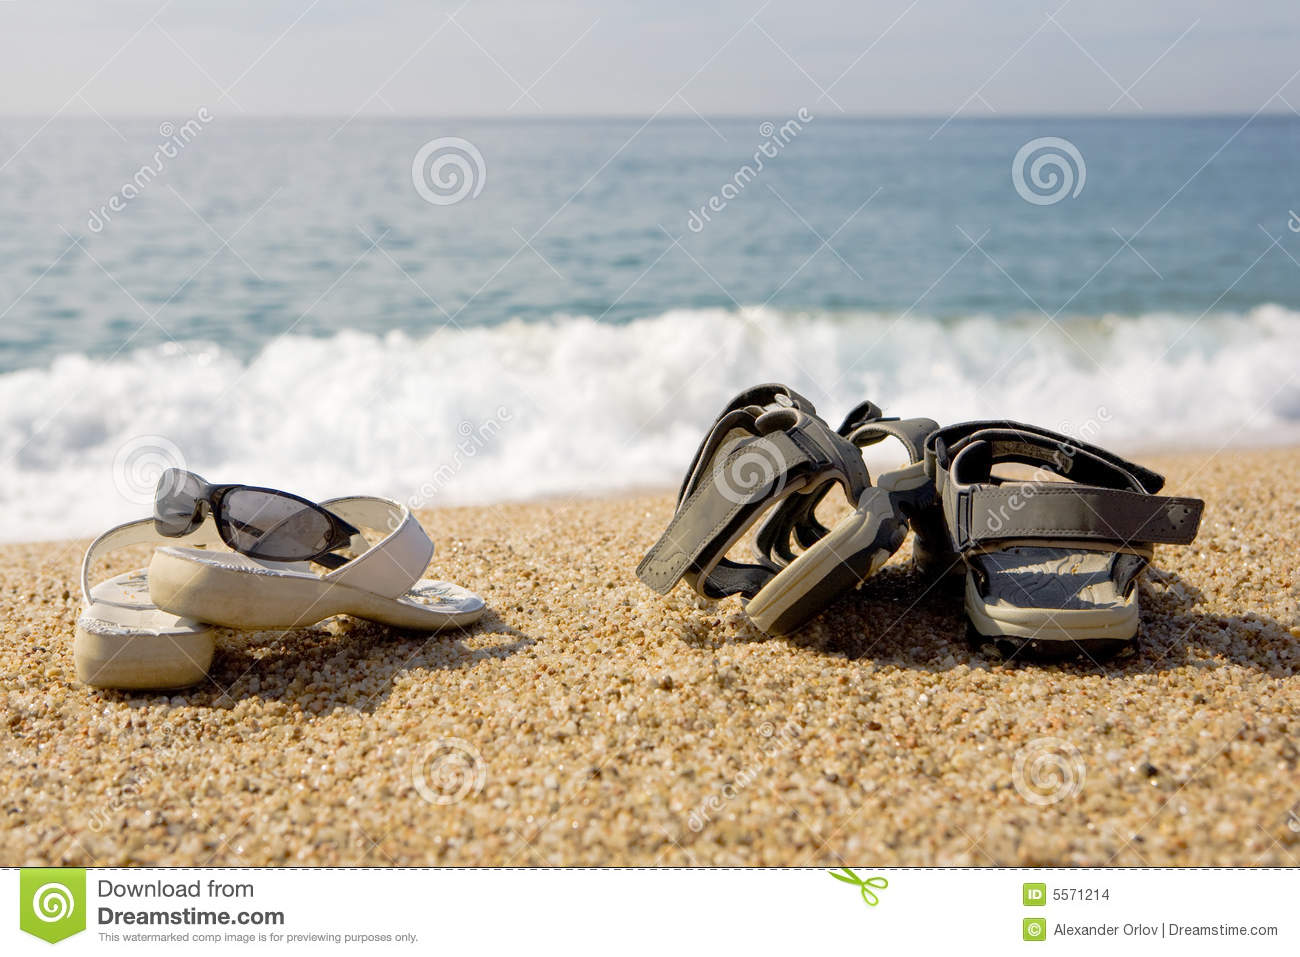 0b3267b8d A photo of two pairs of beach shoes at the seaside. More similar stock  images